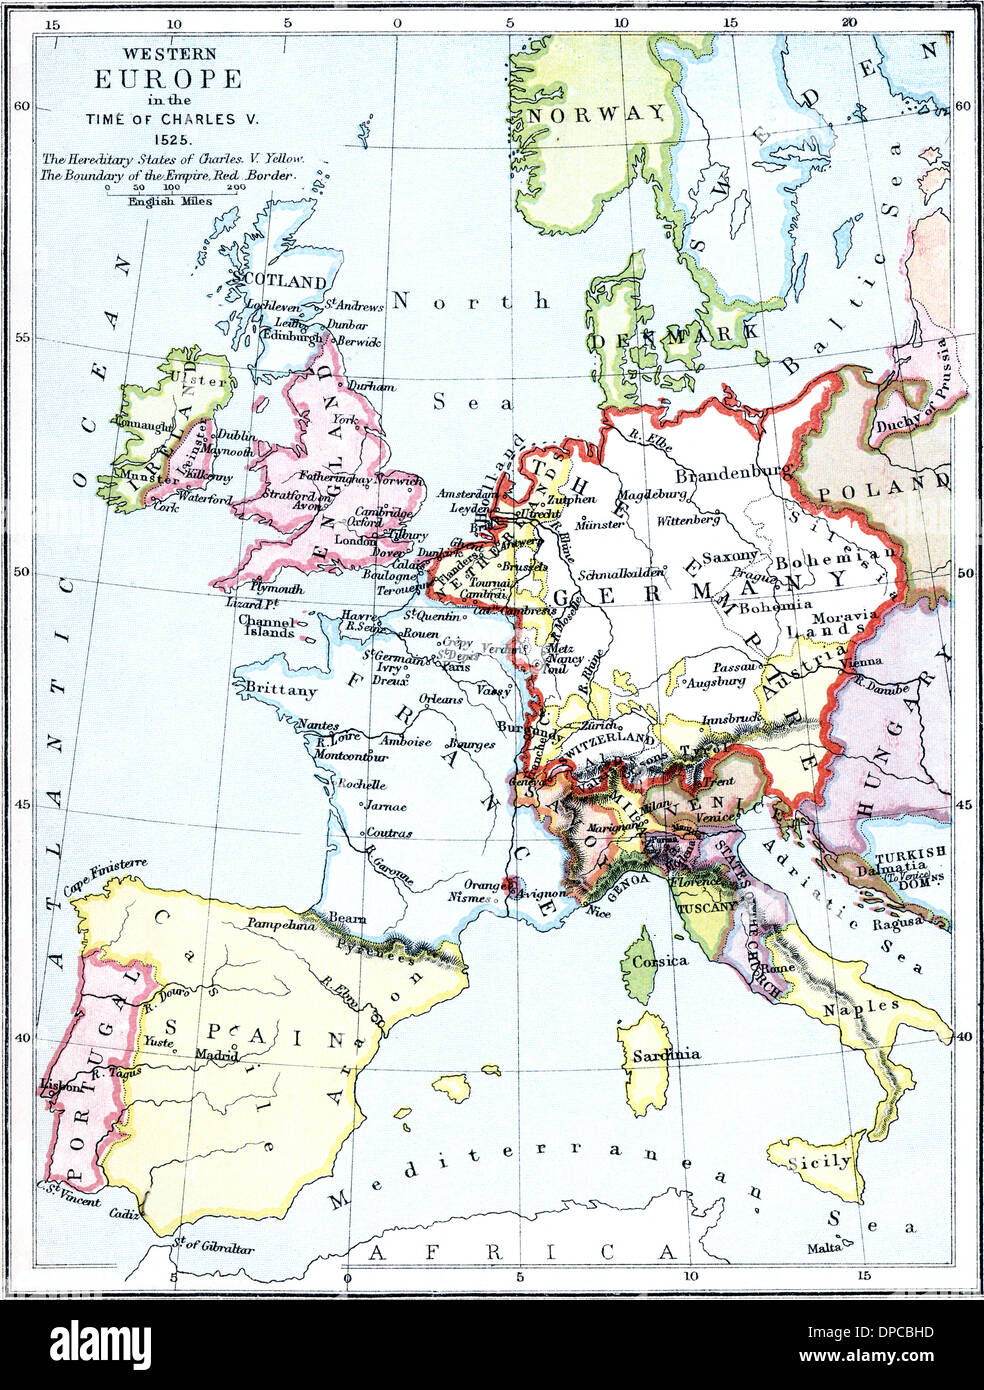 Map Of Europe In The Time Of Charles V 1525 Published 1900 Stock